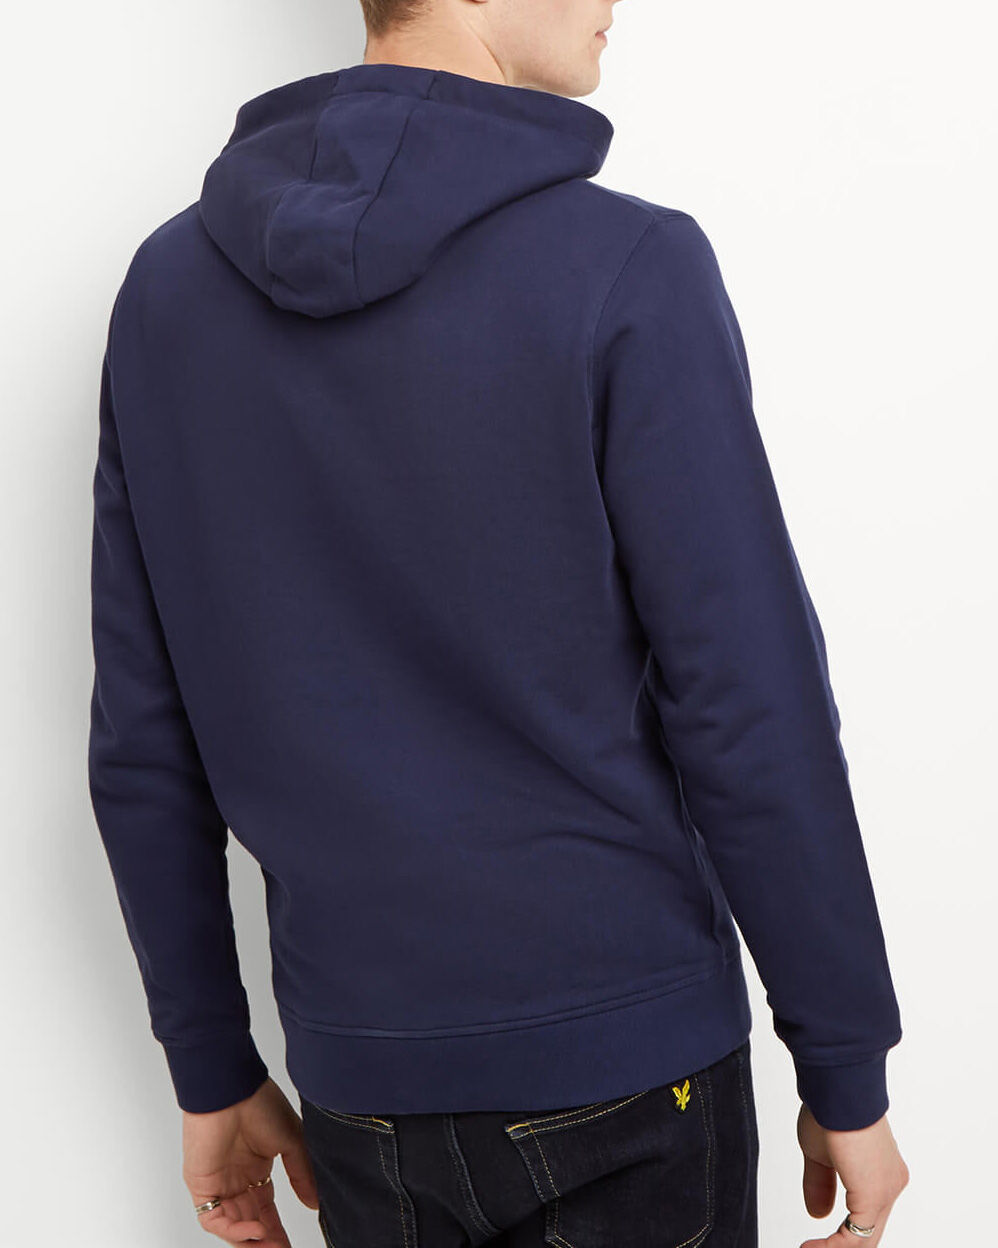 Lyle-and-Scott-Mens-Pullover-Hoodie-Cotton thumbnail 35